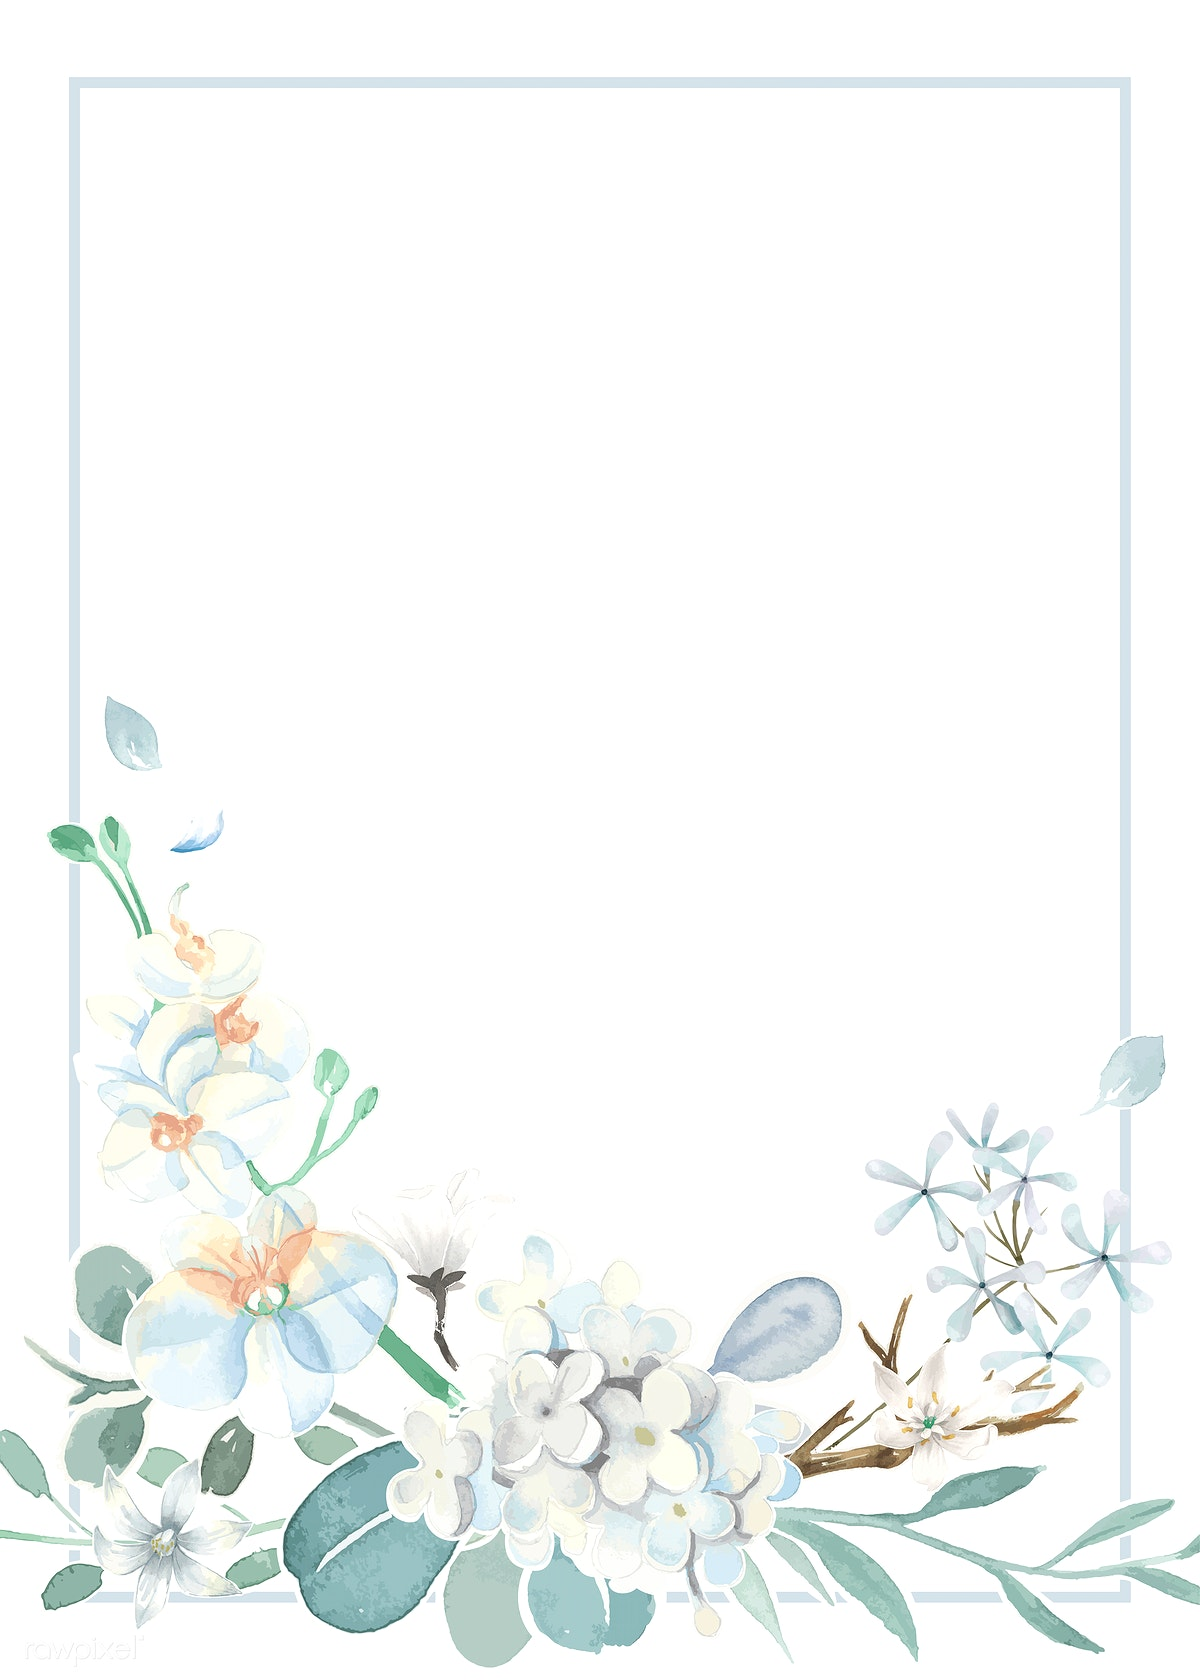 Download Premium Illustration Of Invitation Card With A Light Blue Theme